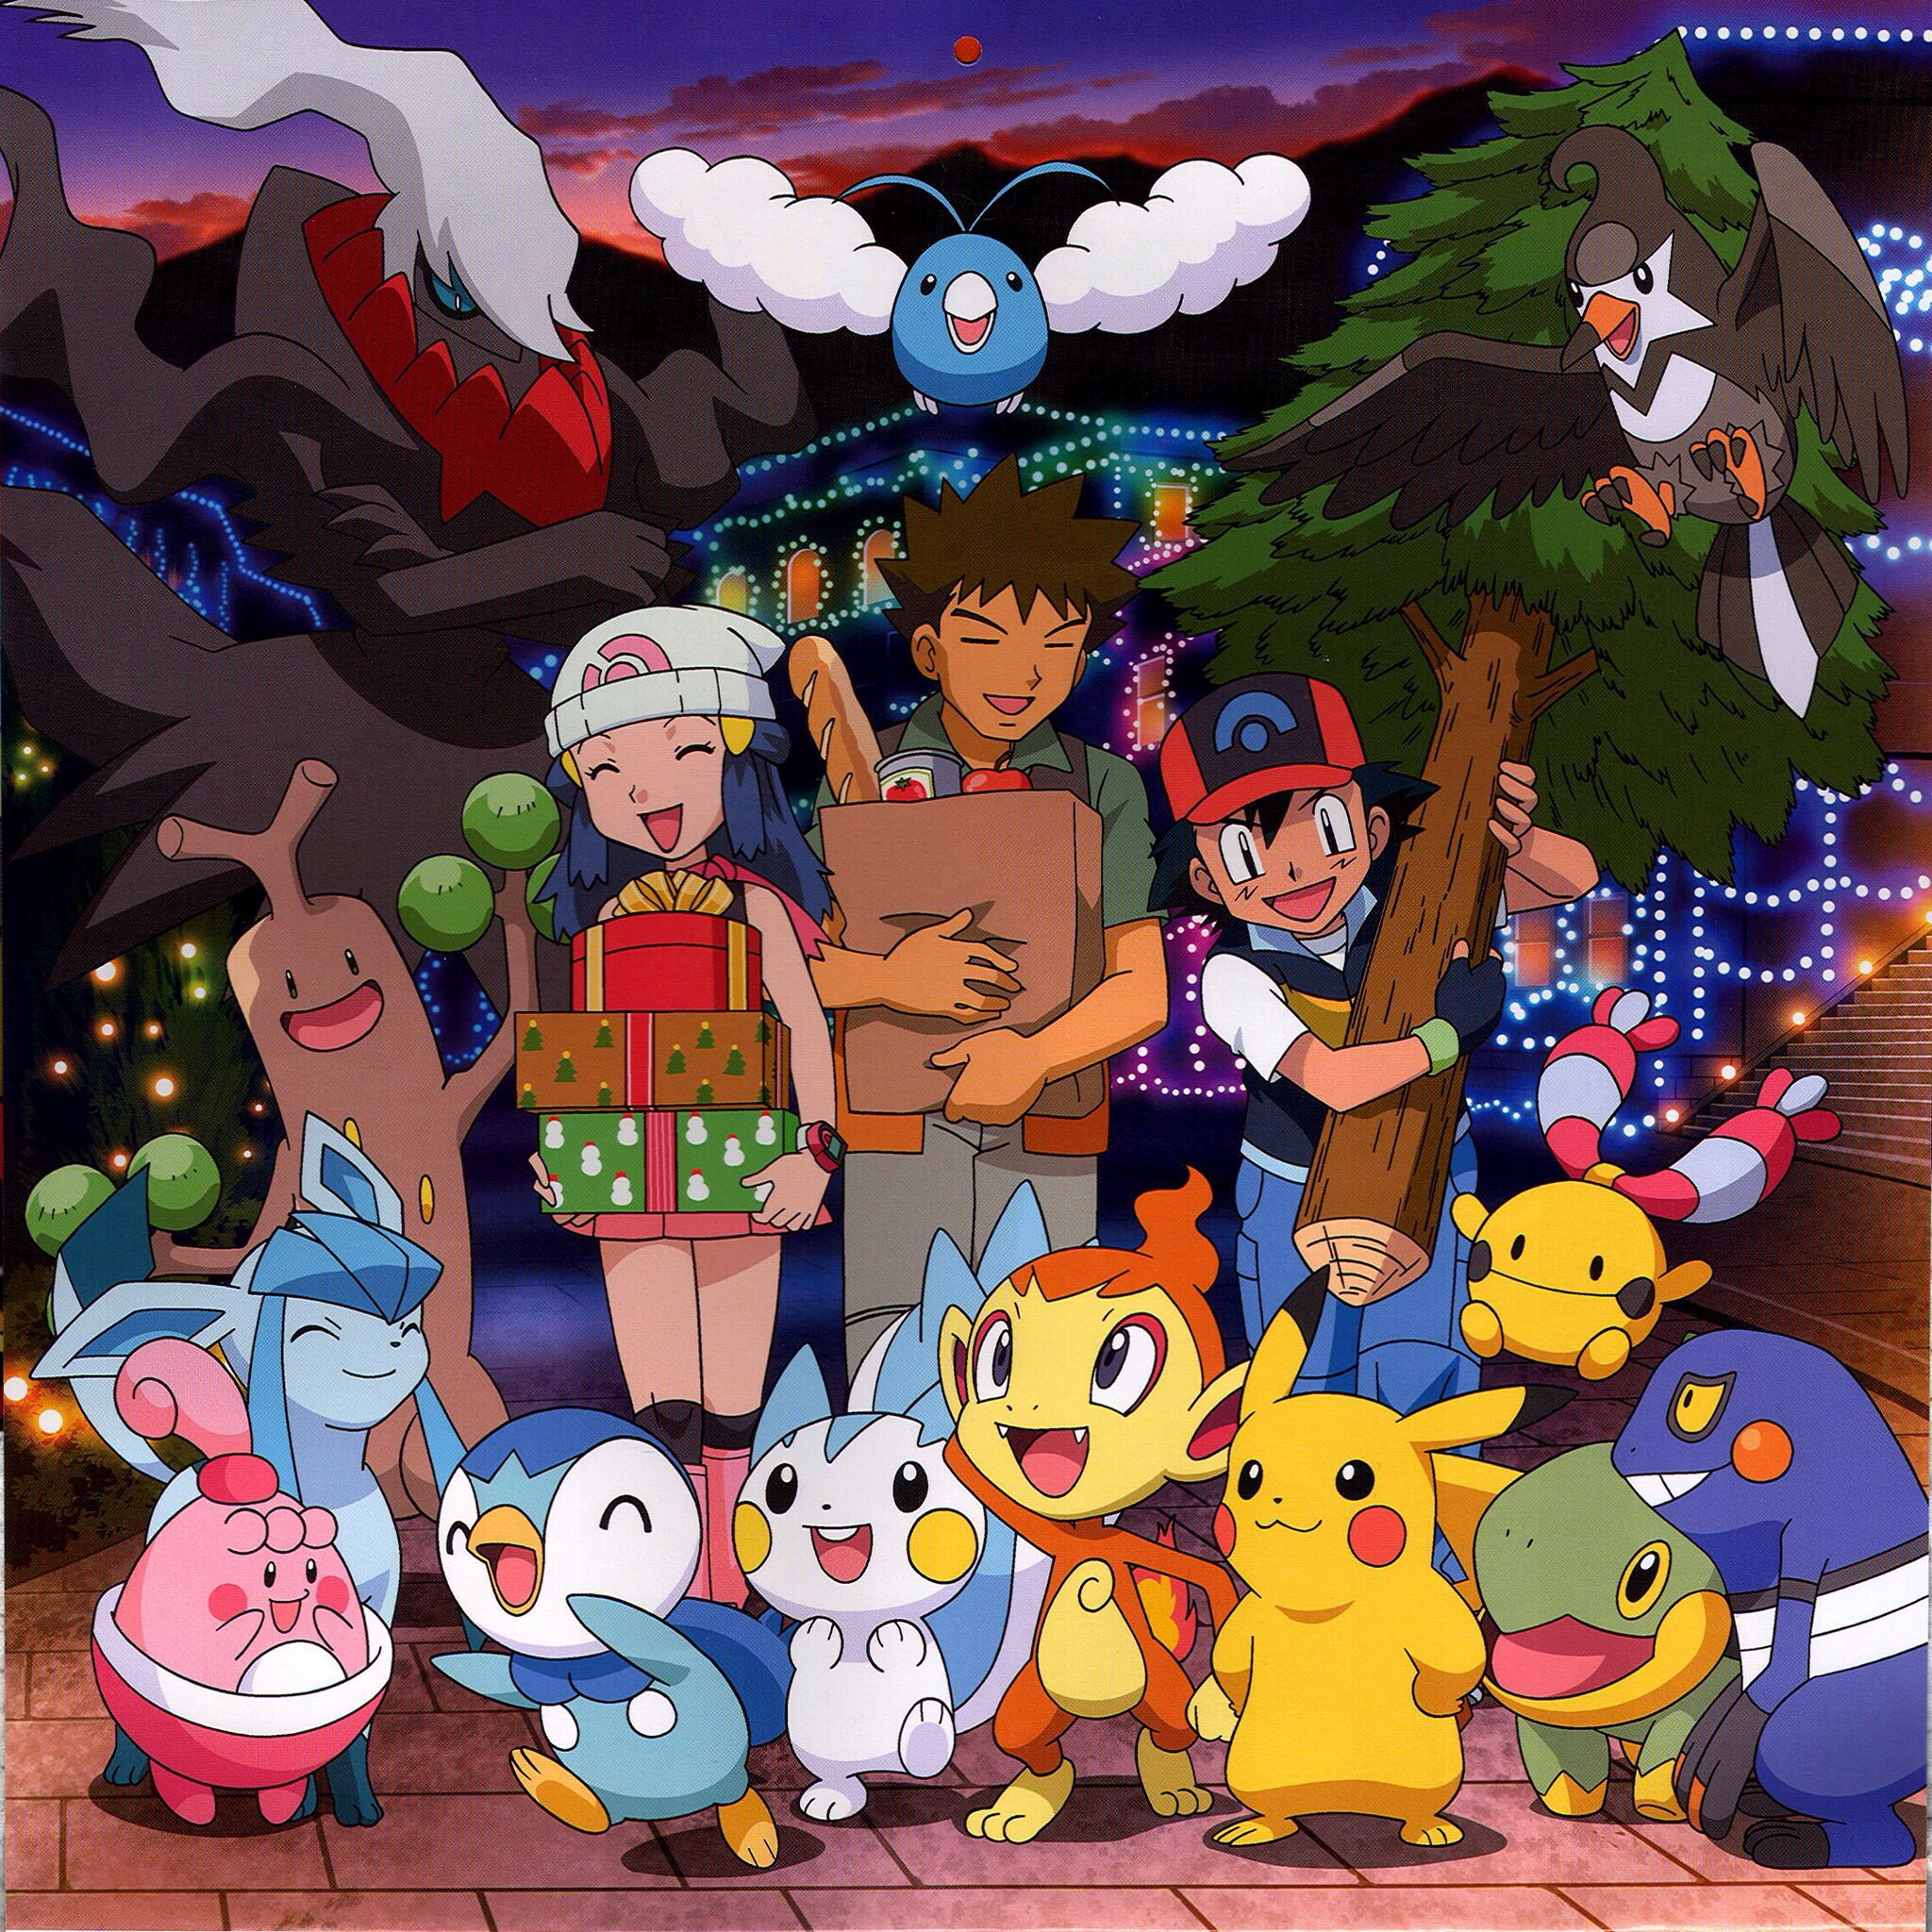 Ash, Pikachu, and the rest of the gang